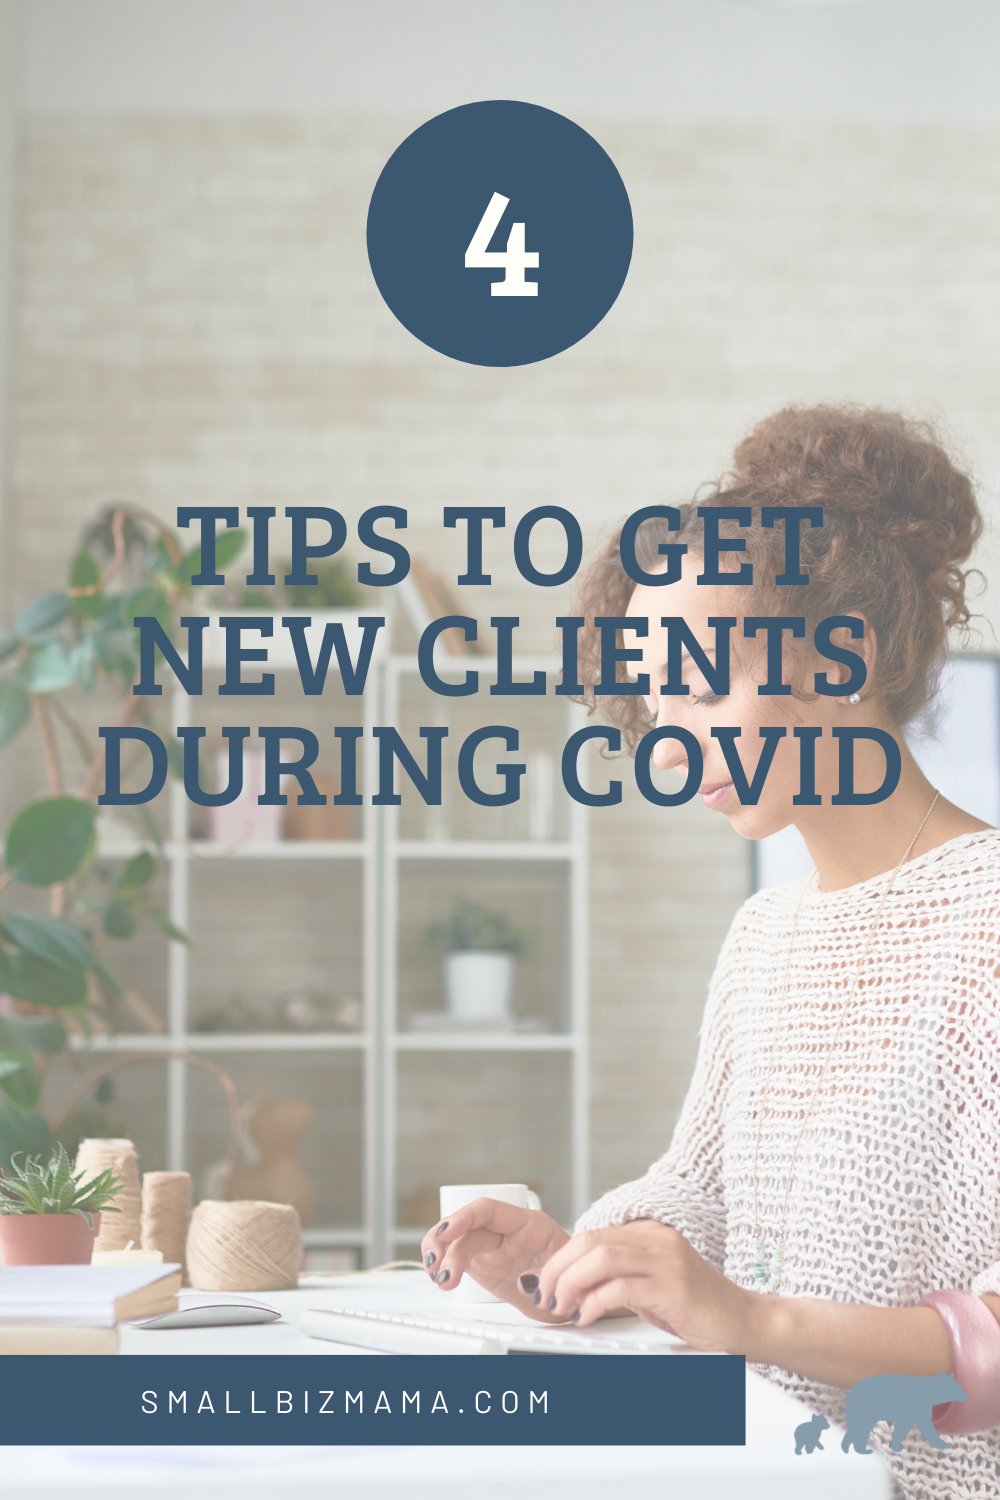 4 tips to get new clients during COVID